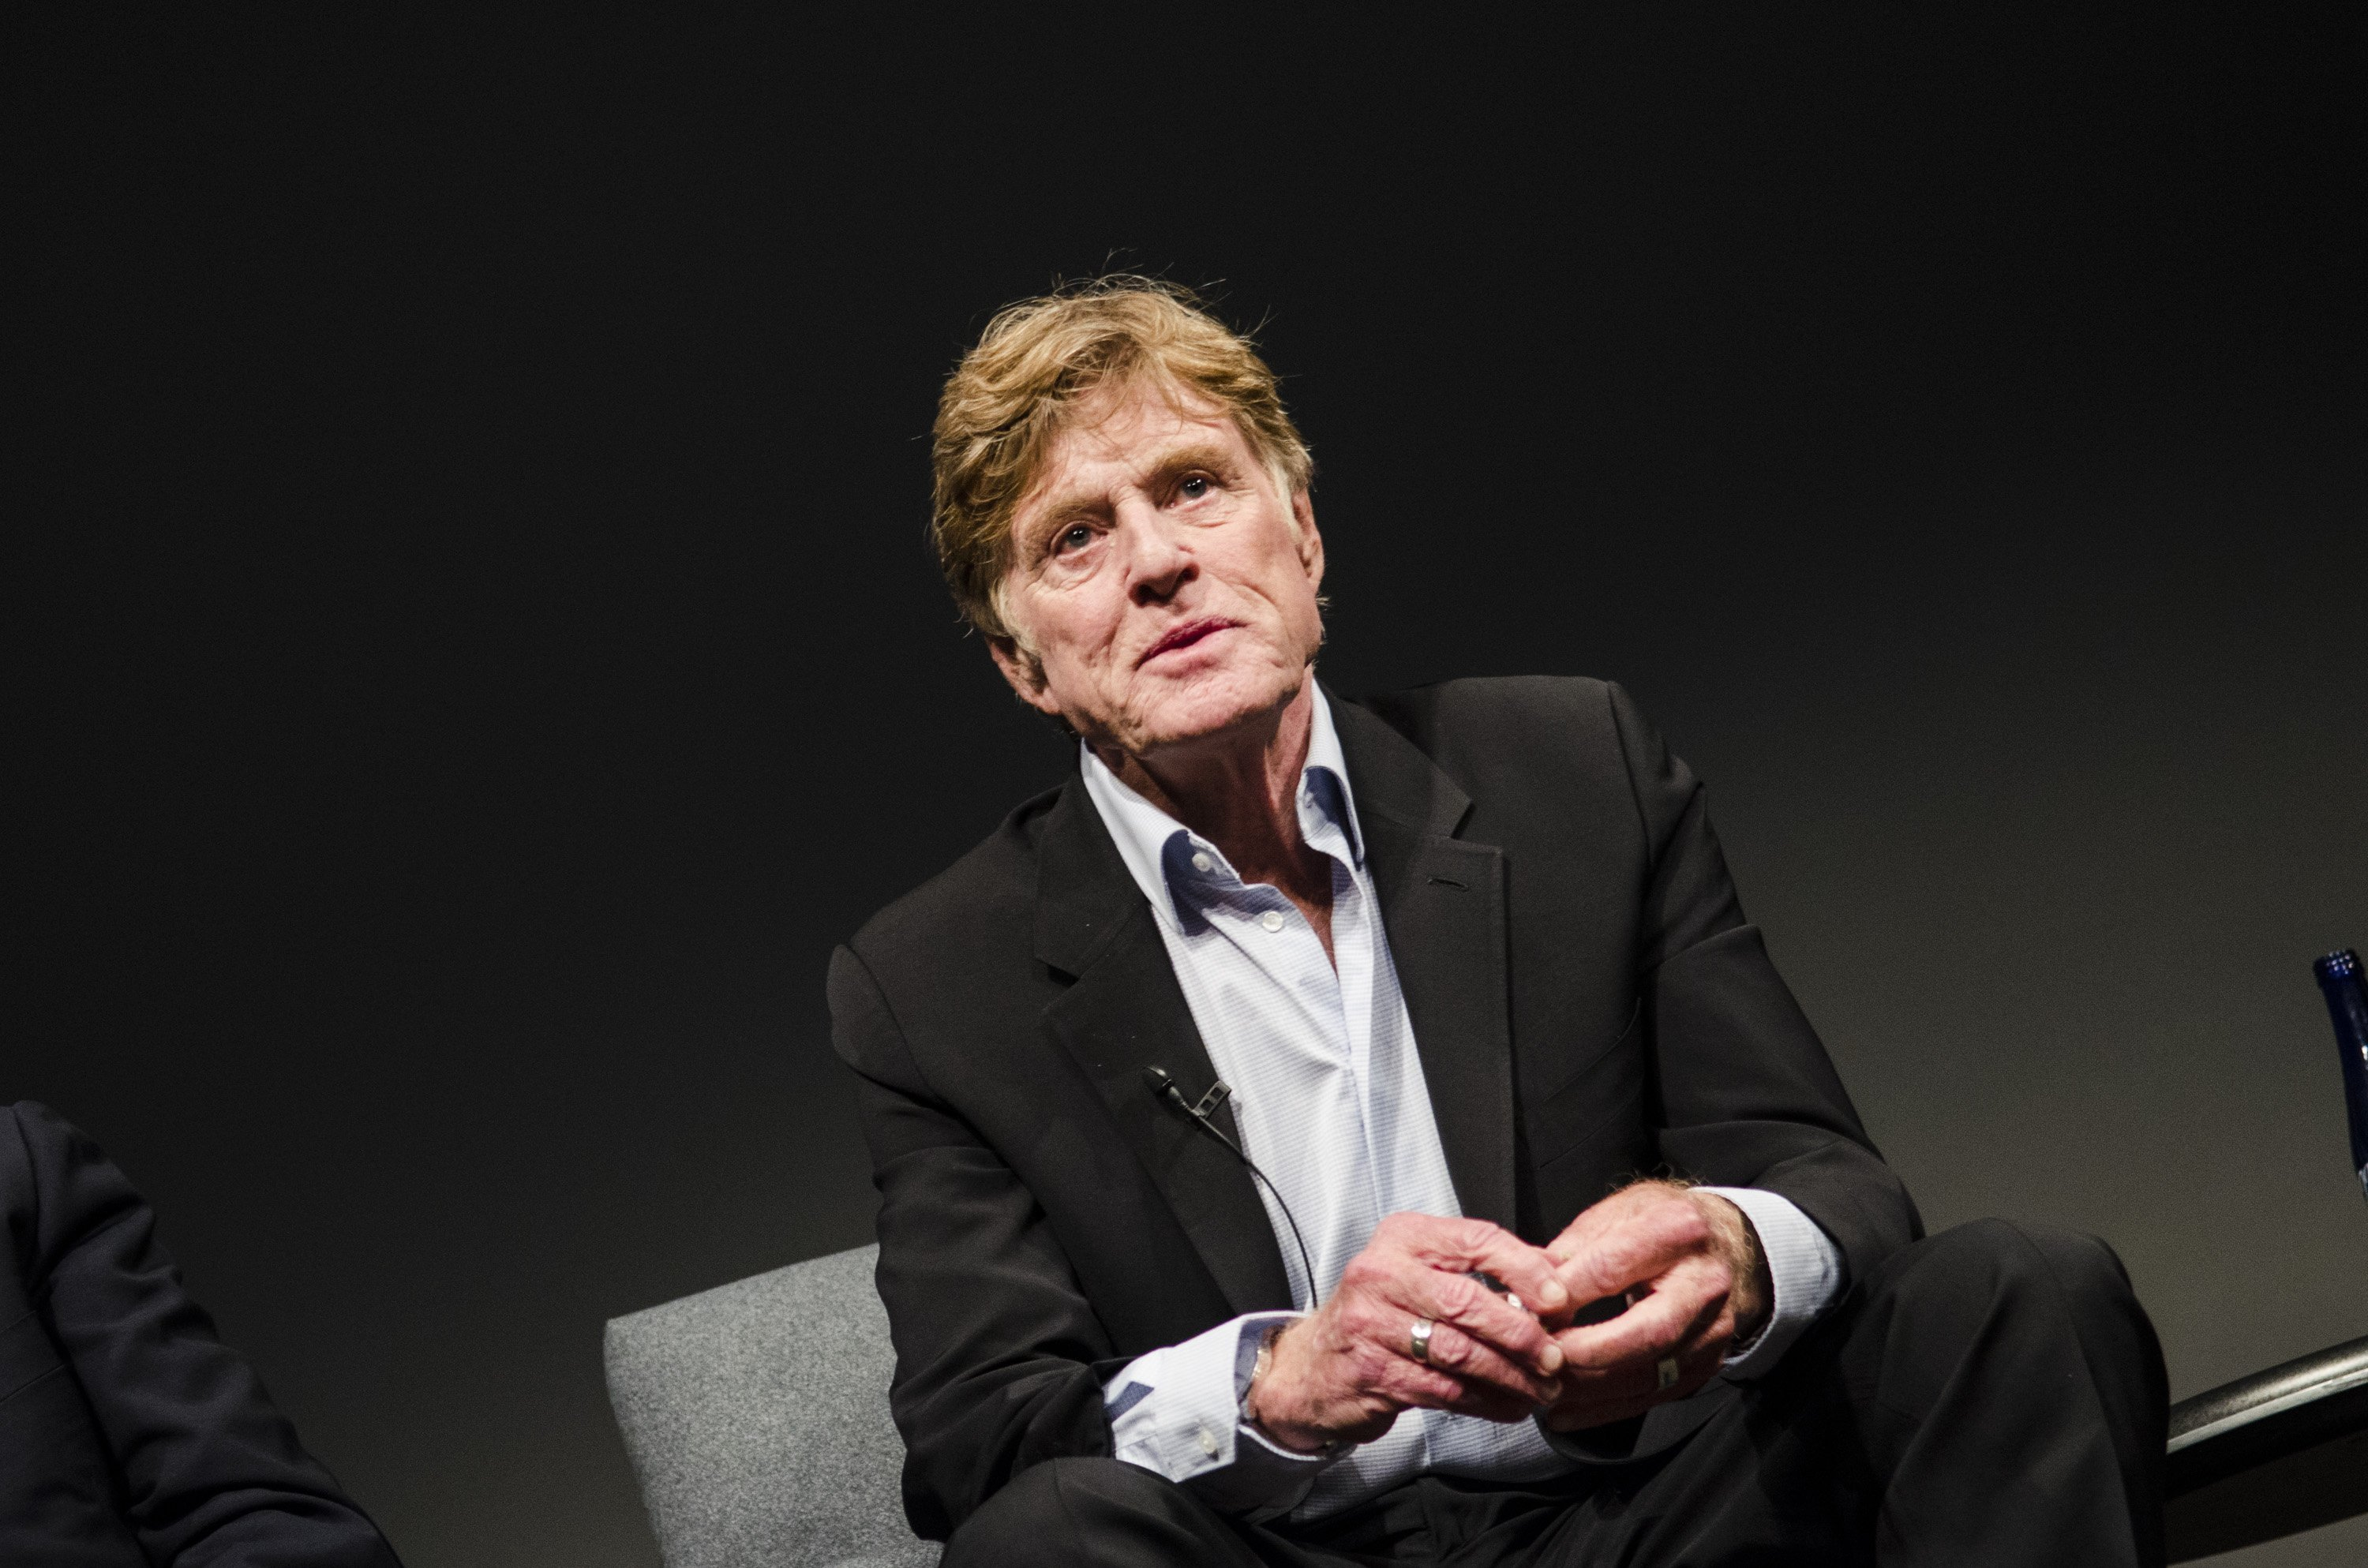 Robert Redford at The Newseum on April 18, 2013   Photo: Getty Images